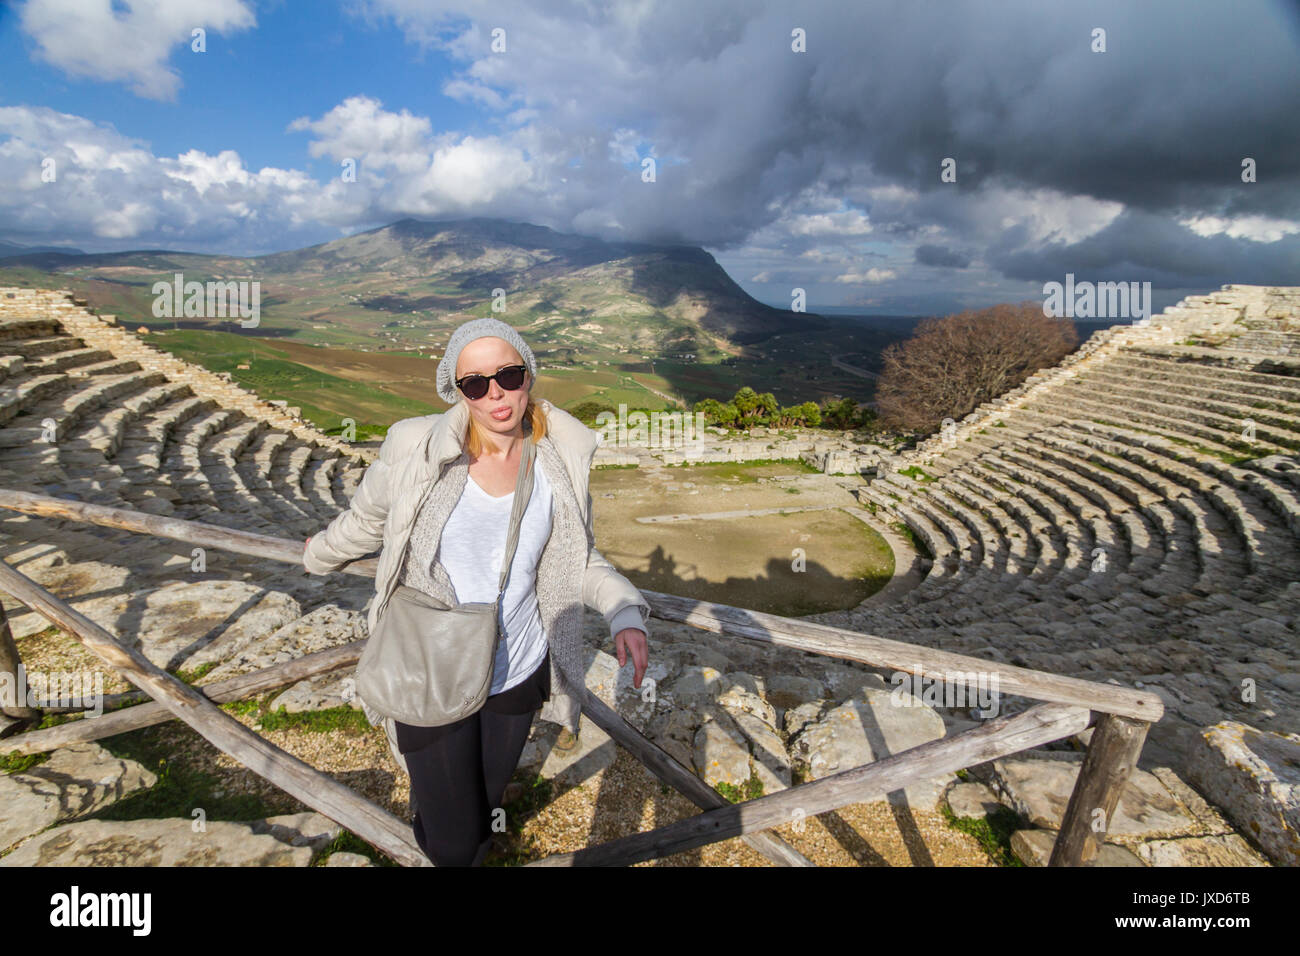 Tourist taking photo in front of greek theater of Segesta, Sicily, Italy Stock Photo